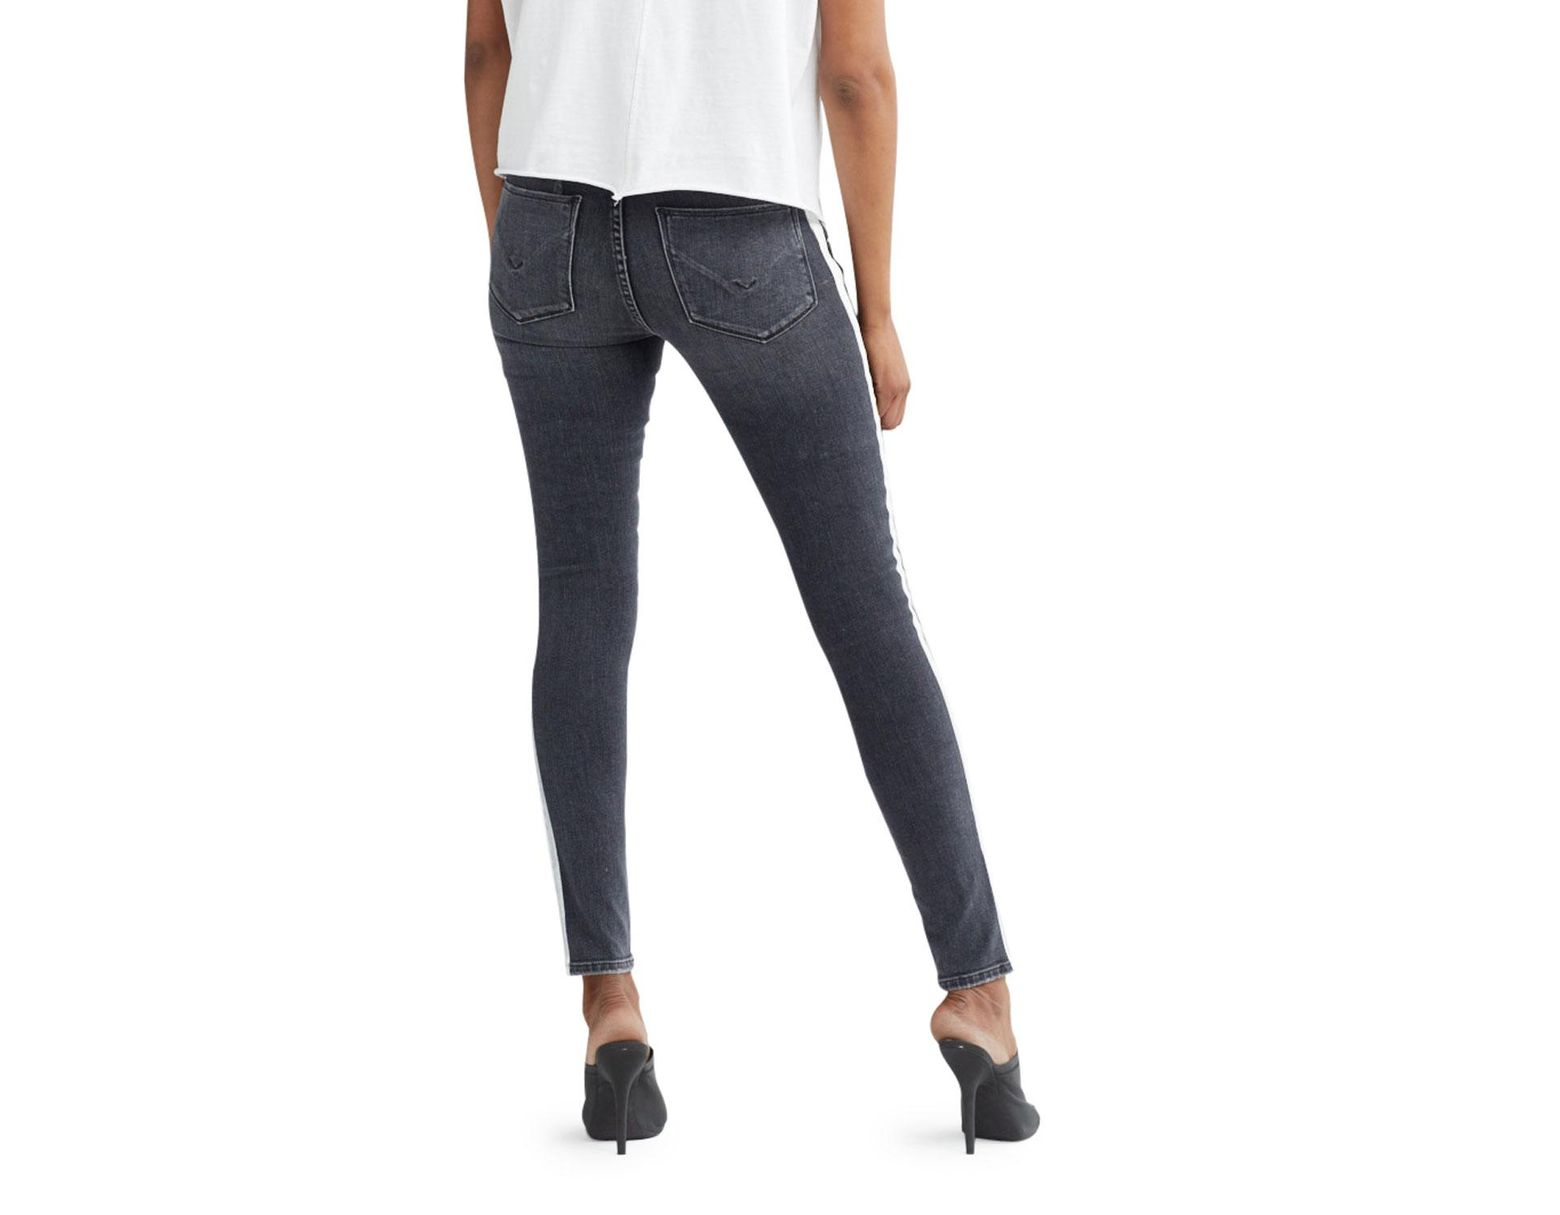 466ead4cdb8 Hudson Jeans Nico Mid-rise Super Skinny Ankle Jeans With Side Stripes in  Blue - Lyst